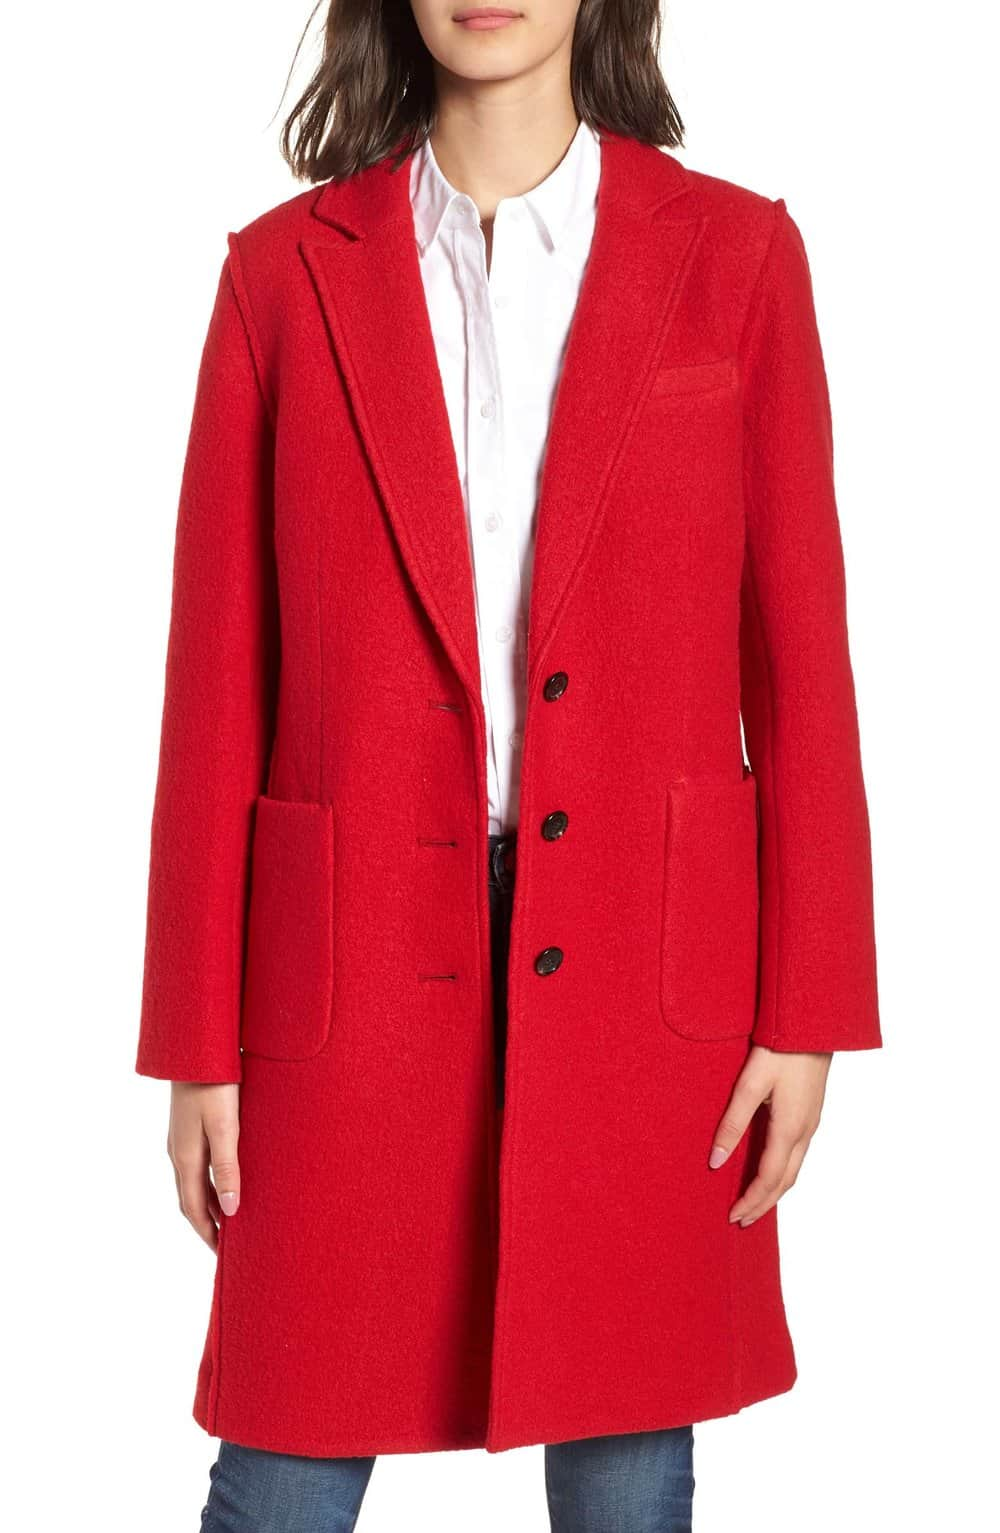 red coat paris fall fashion finds